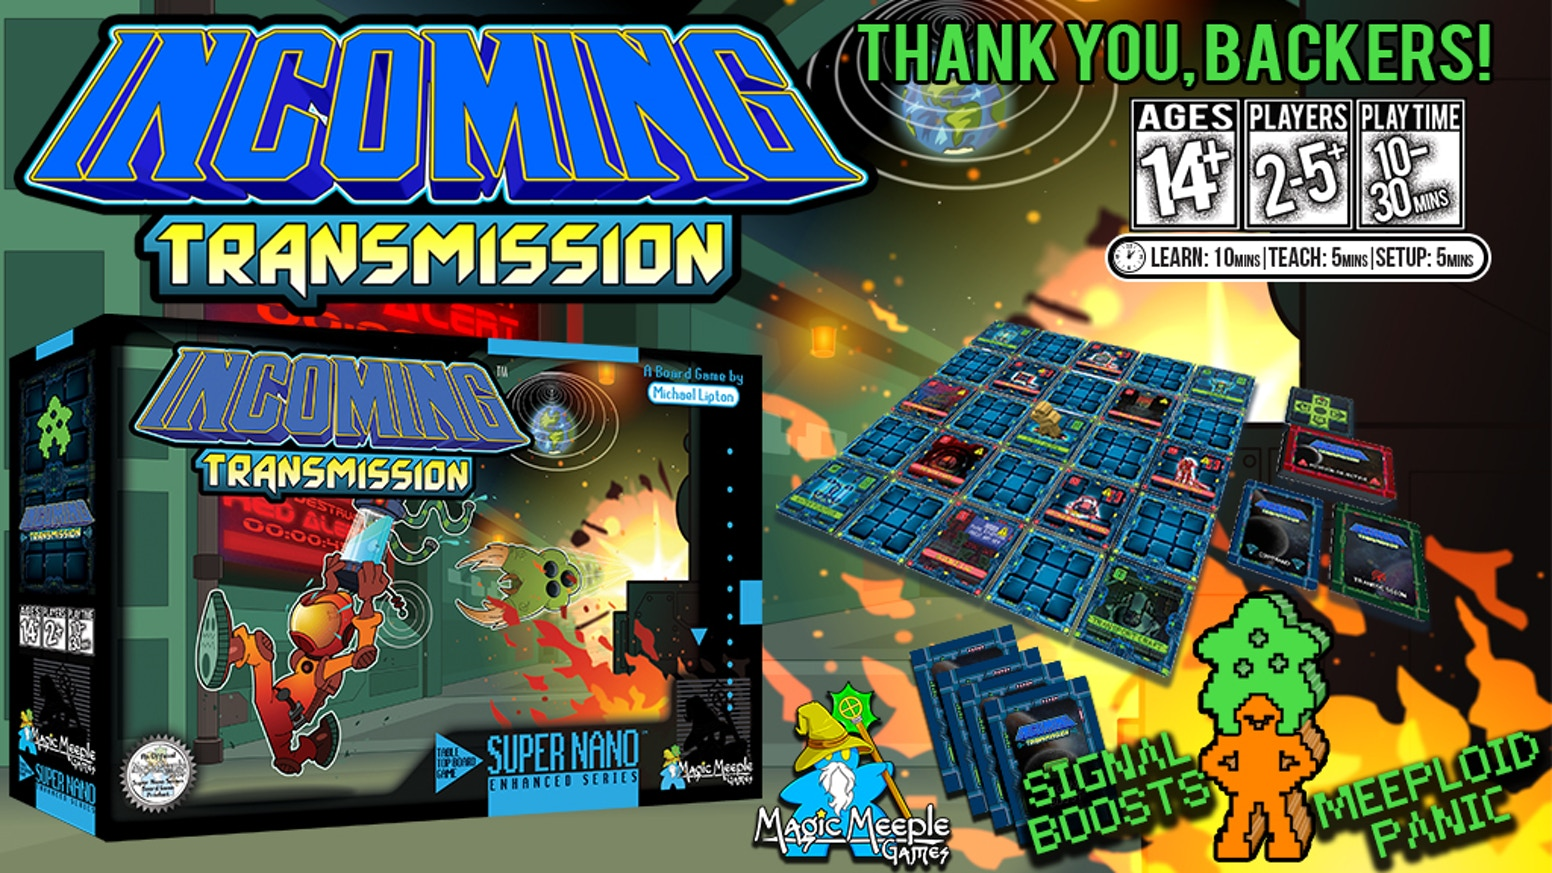 INCOMING TRANSMISSION - 16-bit inspired cooperative puzzle game for 2-5 or more players in 10-30min by the designer of Fire of Eidolon